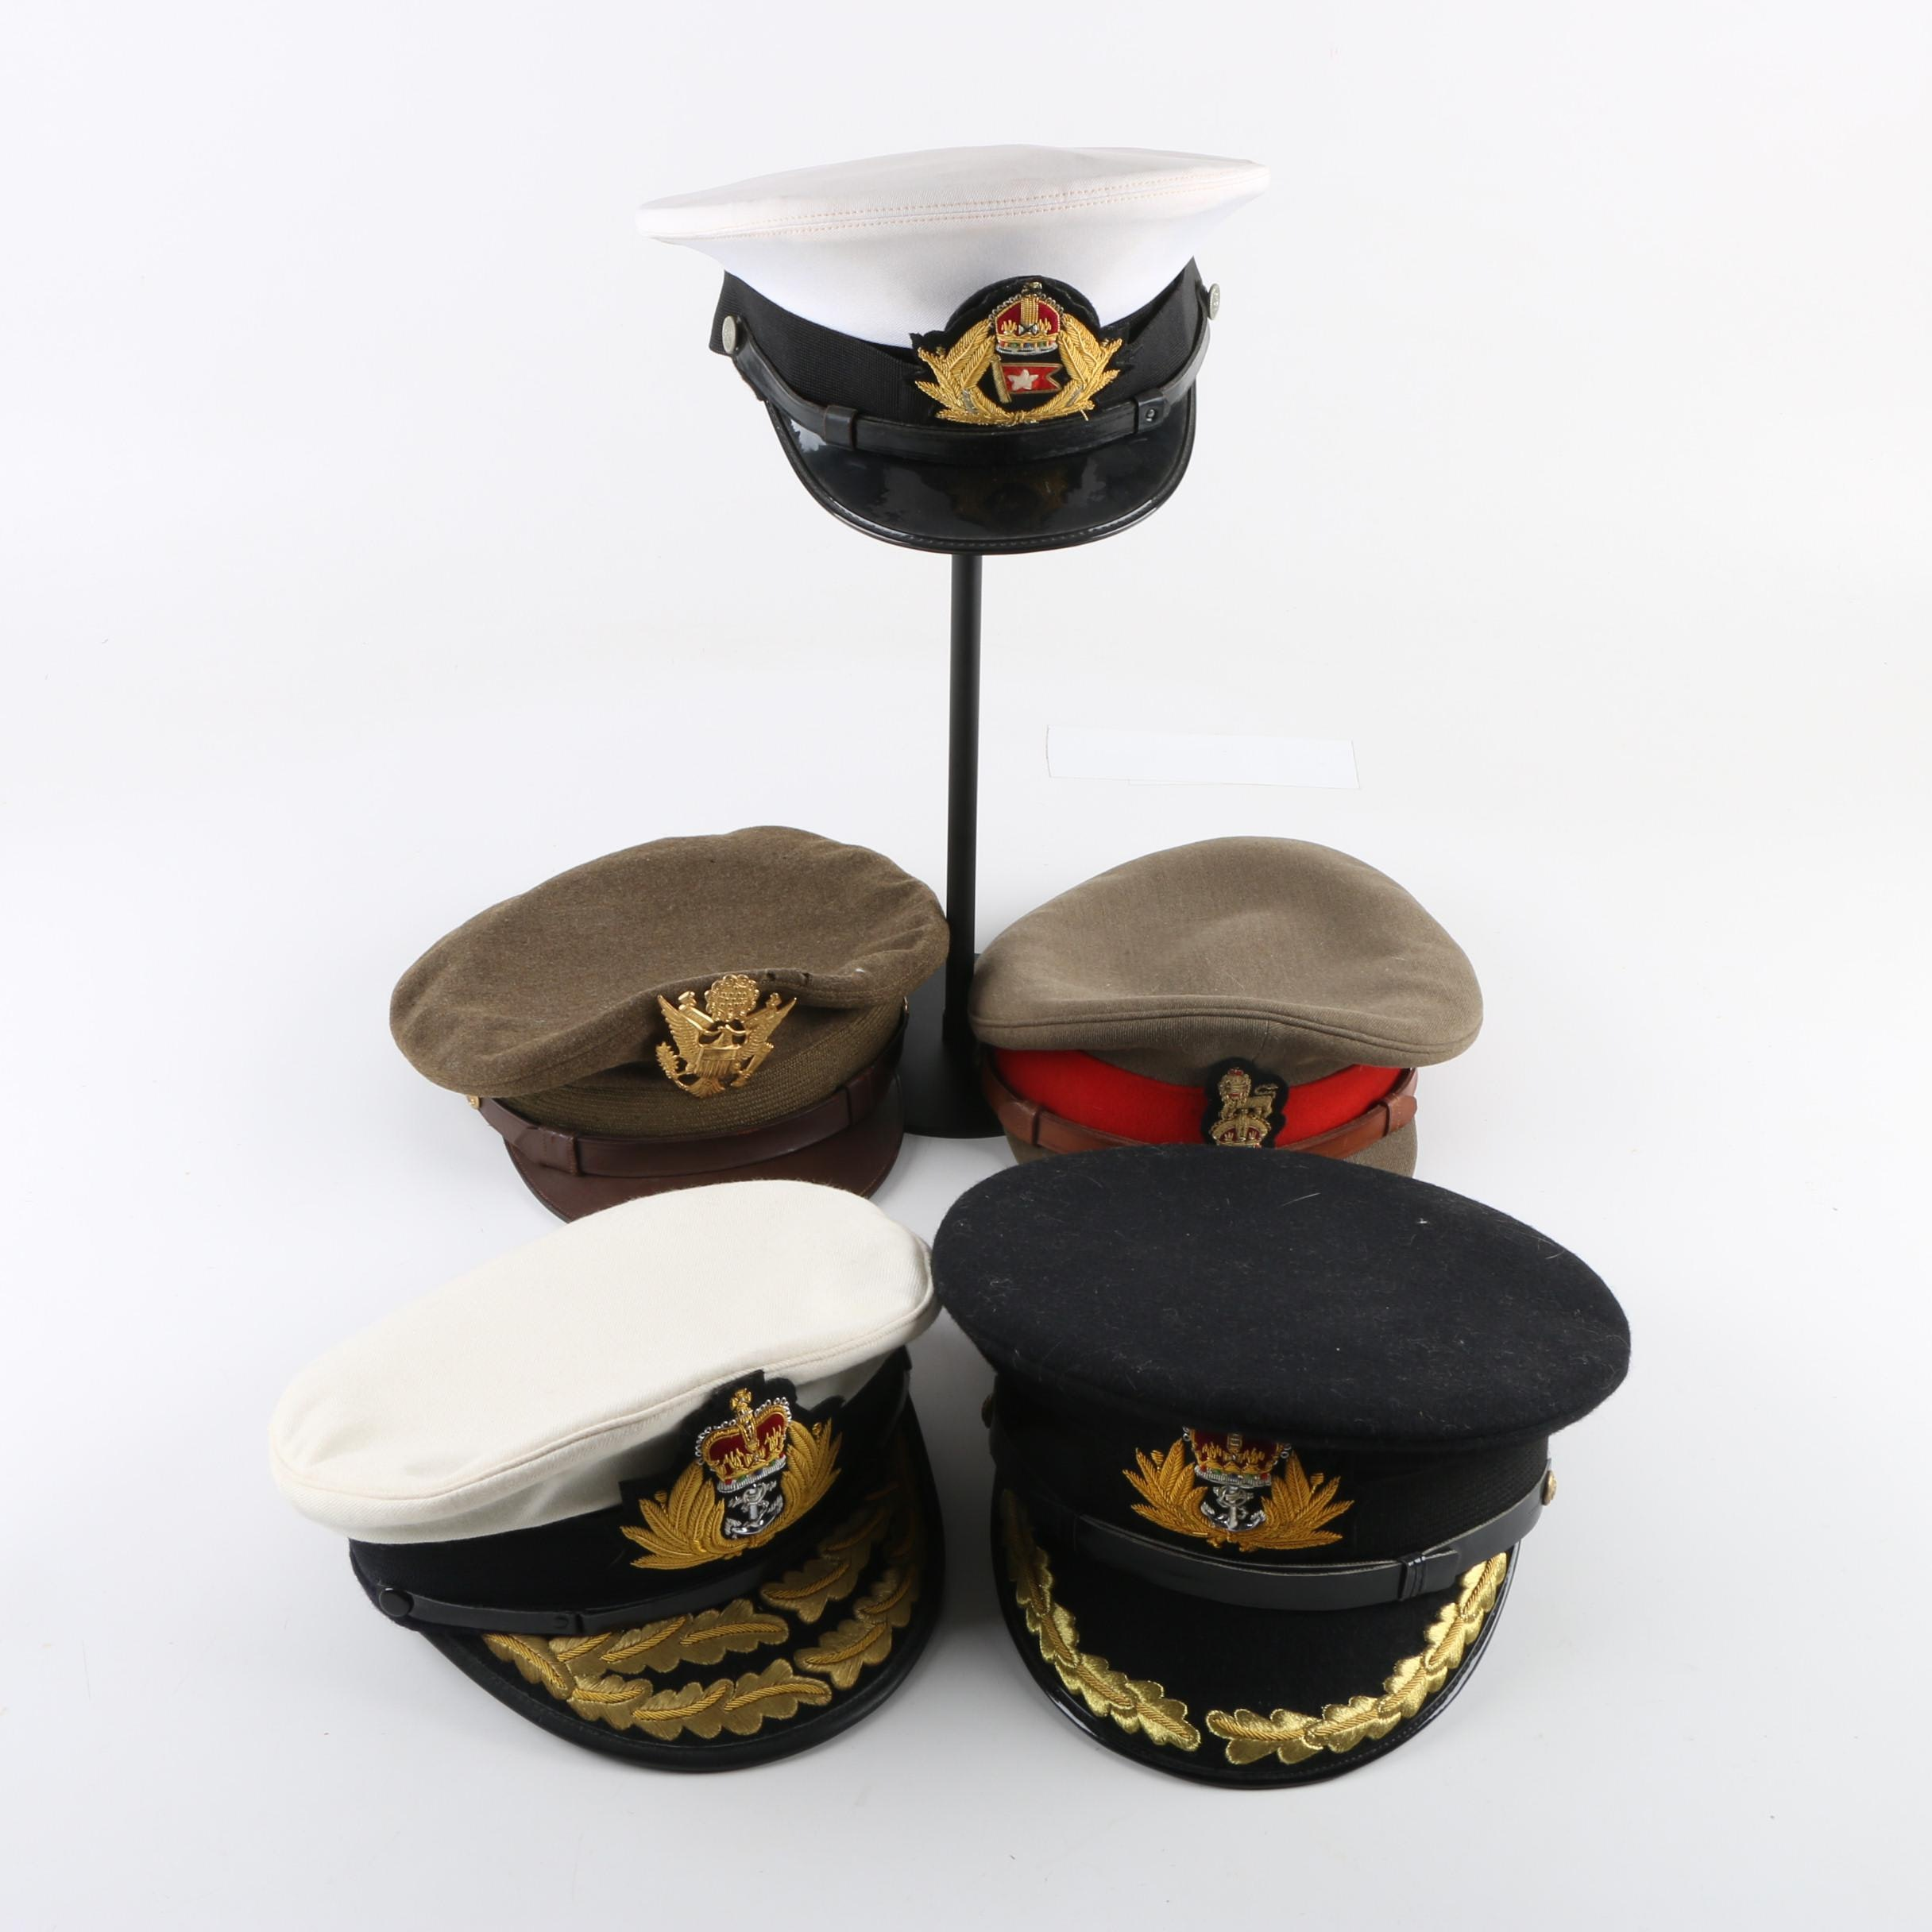 Vintage British Military and US Army Officers Peaked Caps